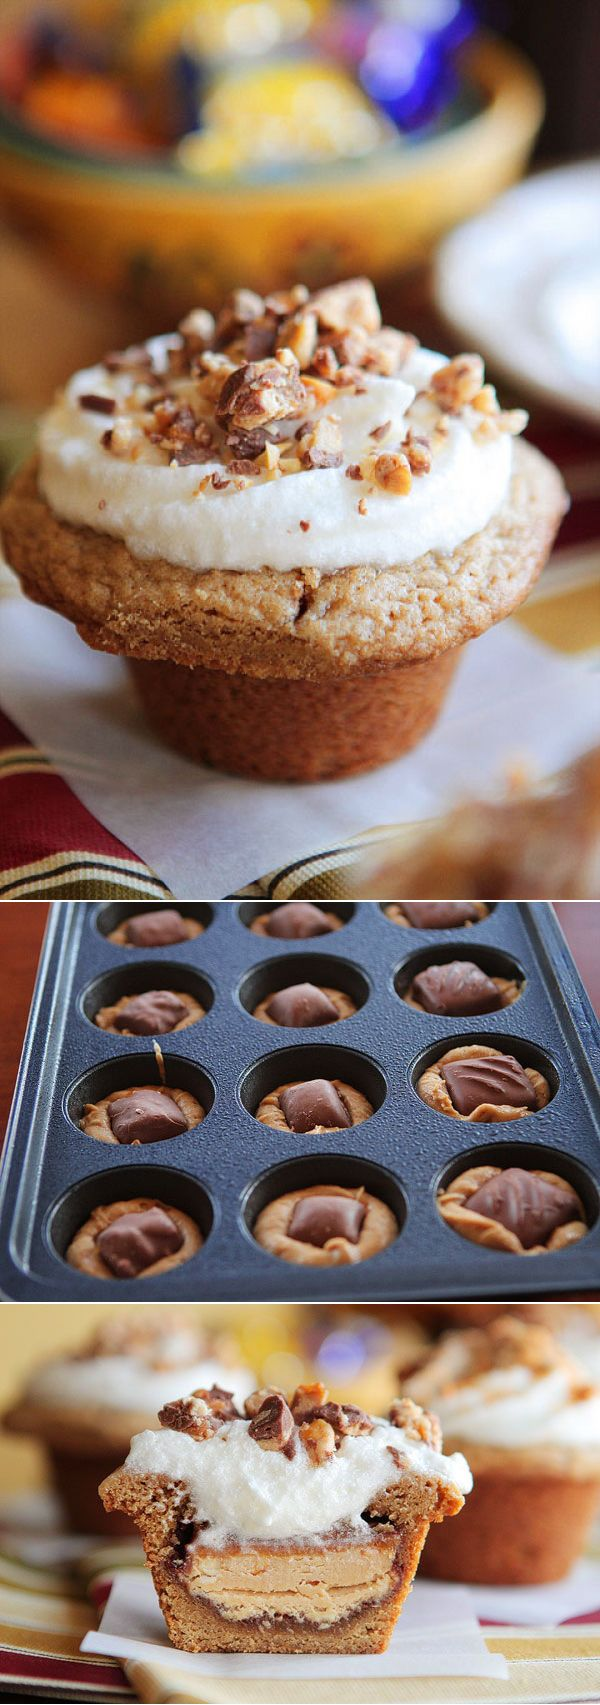 Wrap cookie dough around a mini candy bar and bake it in a muffin tin!